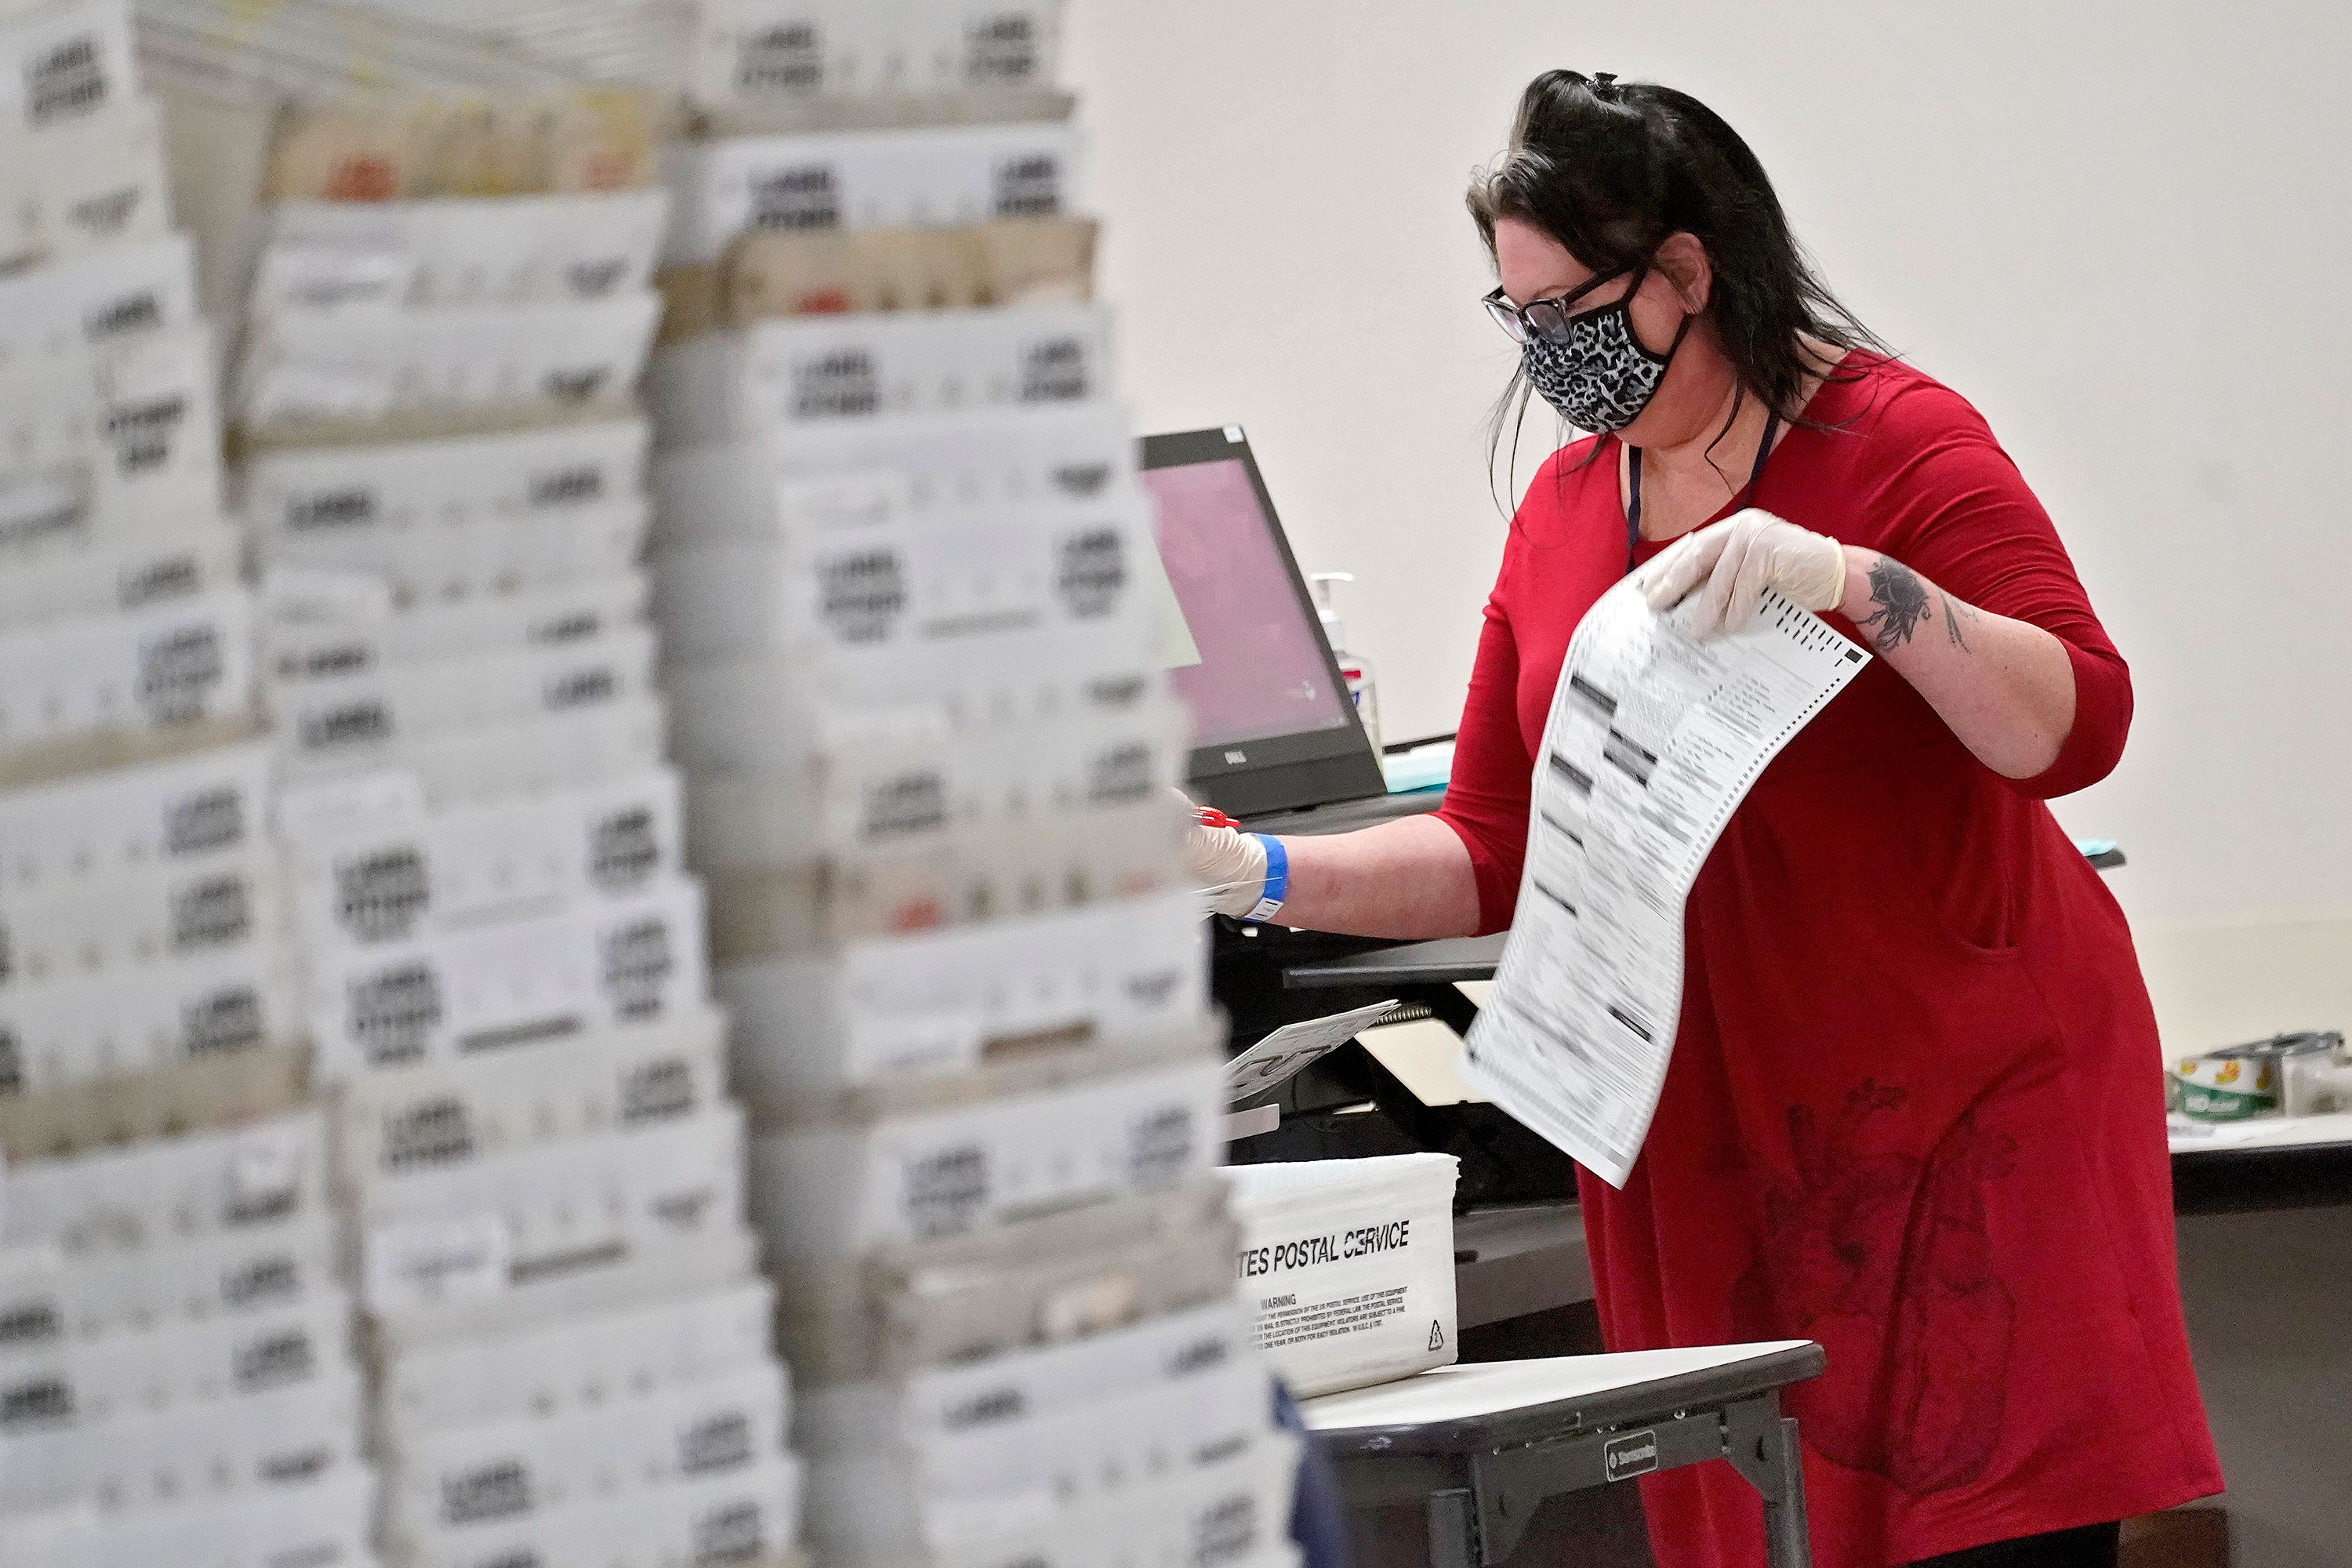 An election official counts ballots inside the Maricopa County Recorder's Office on Friday, November 6 in Phoenix, Arizona.